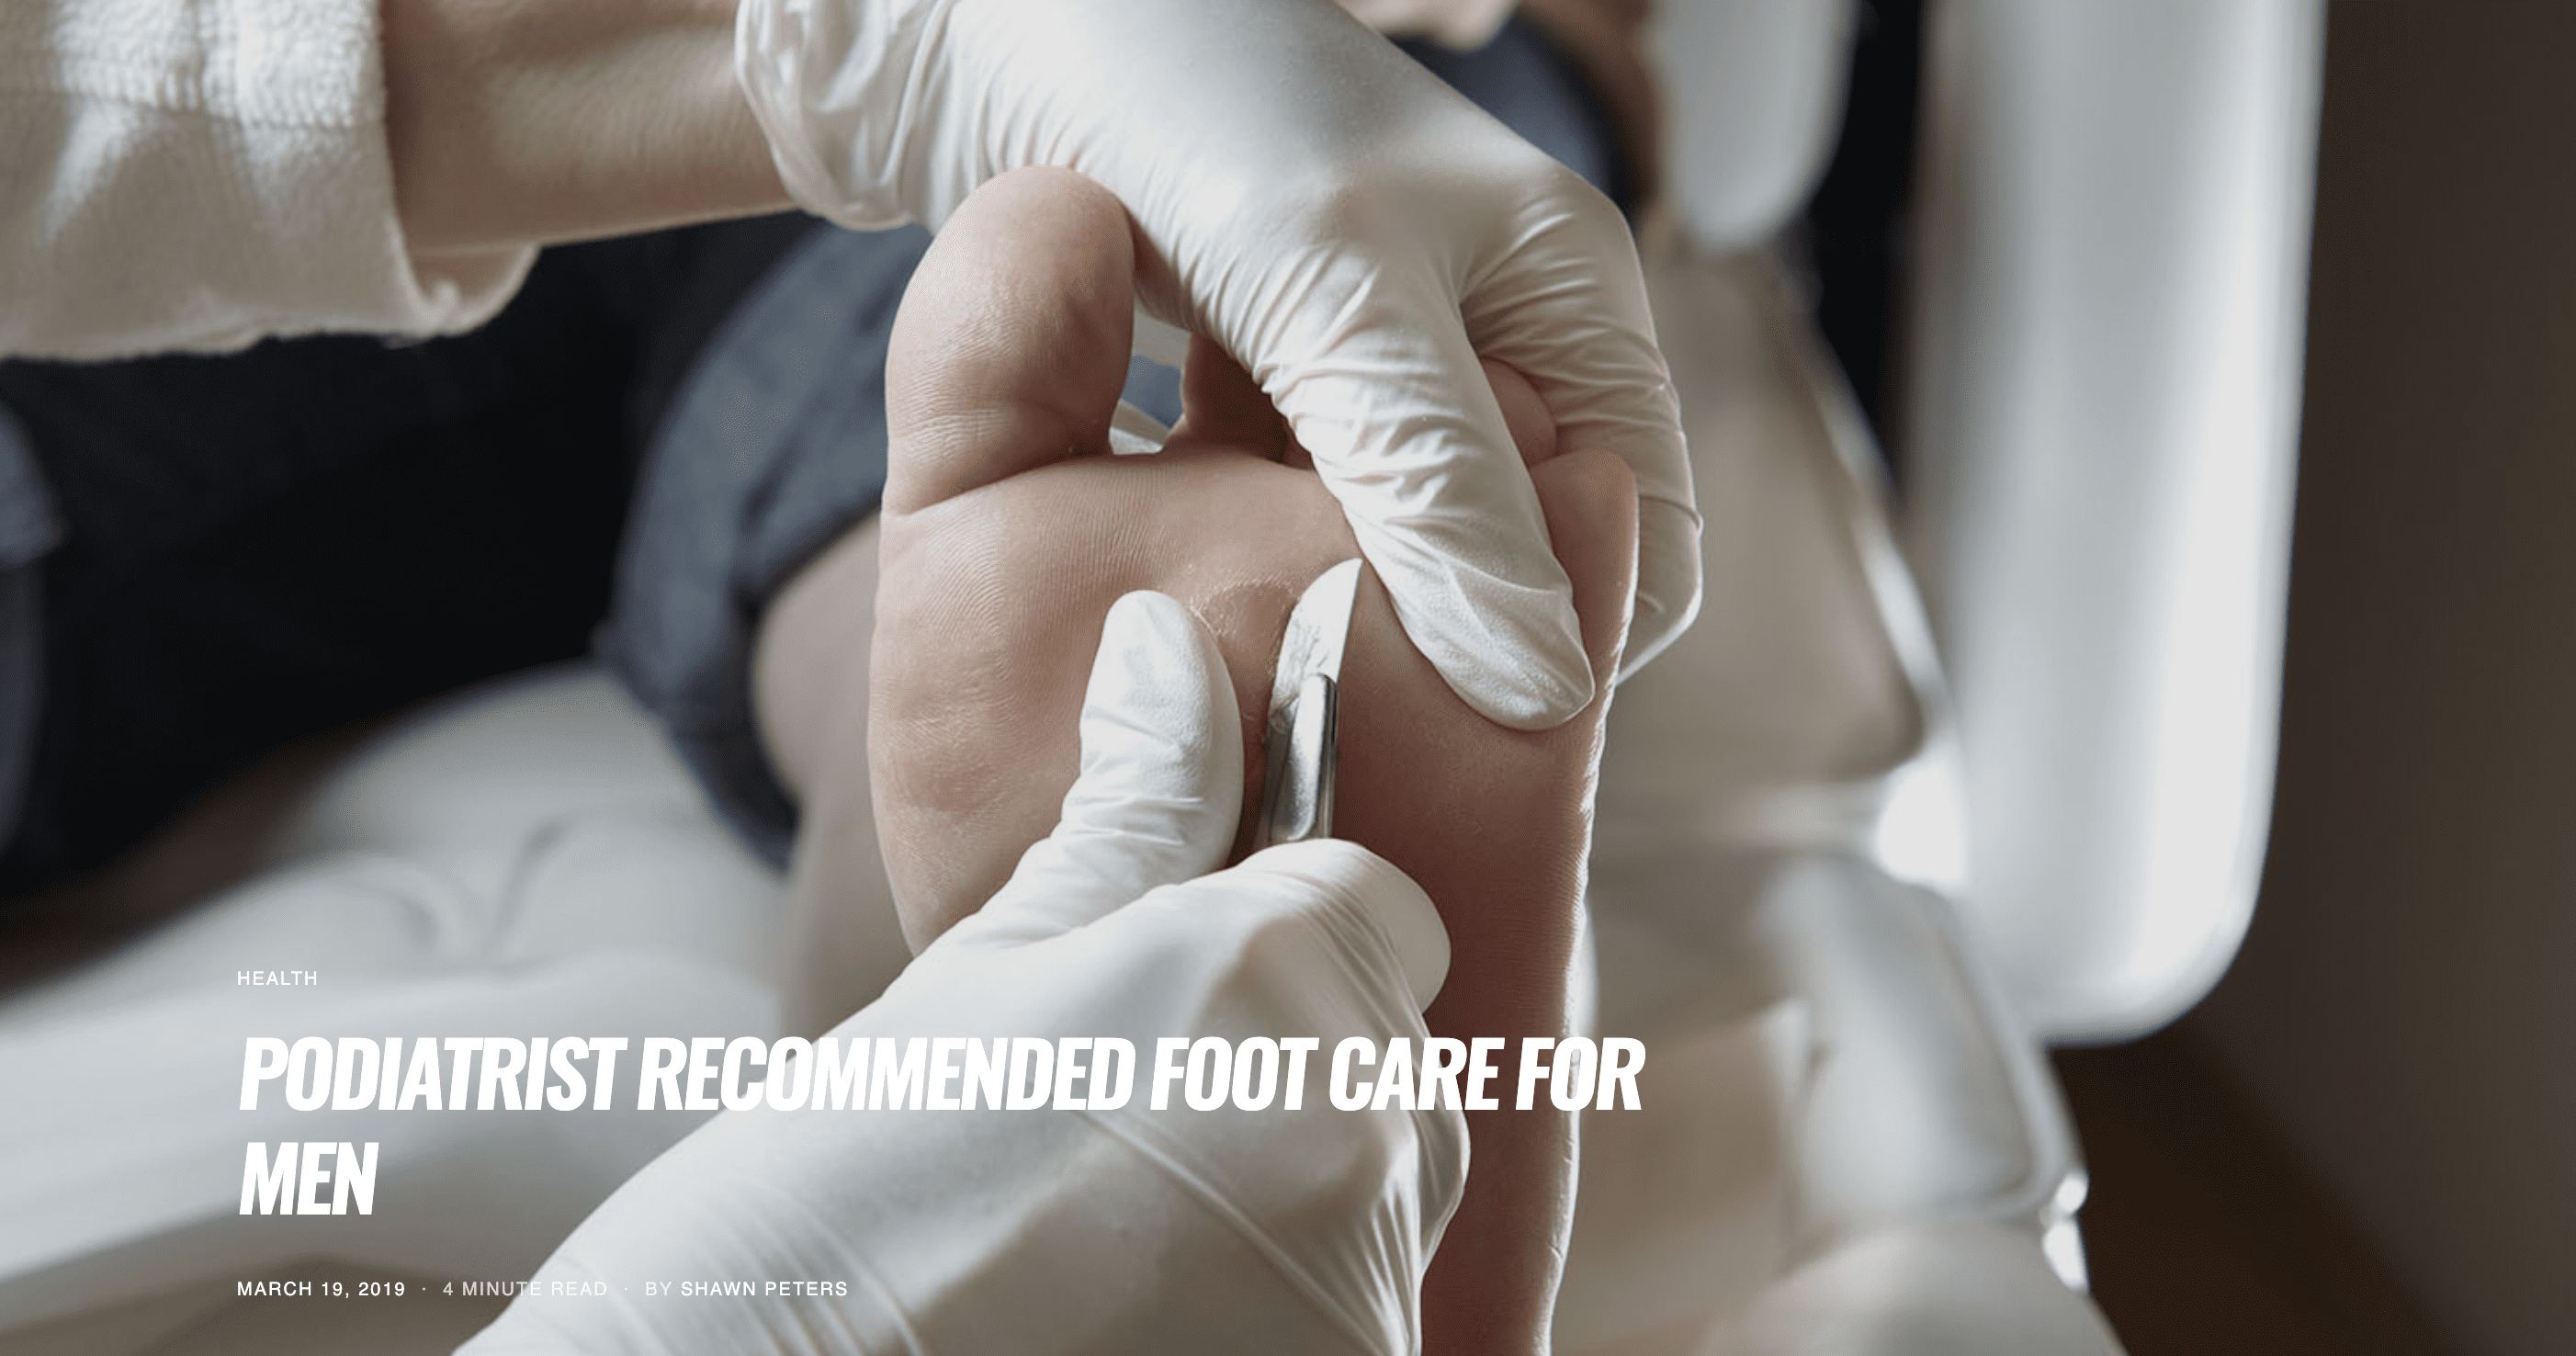 PODIATRIST RECOMMENDED FOOT CARE FOR MEN